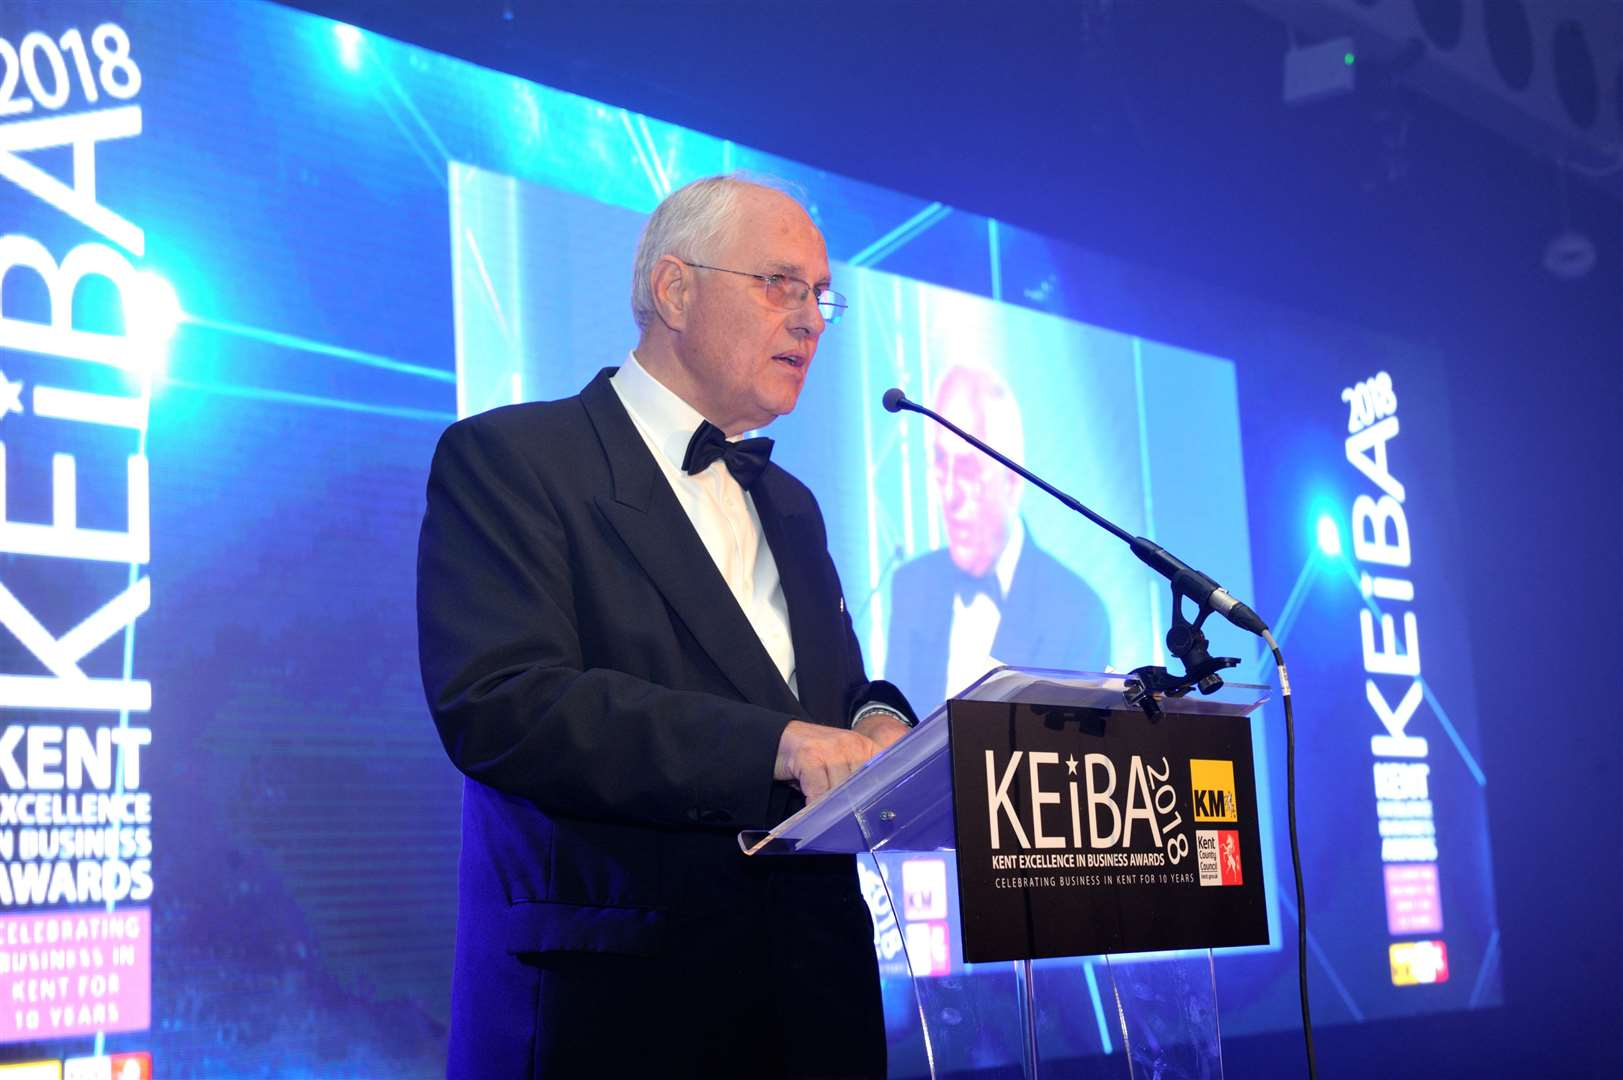 Chairman of the KEiBA judging panel Geoff Miles